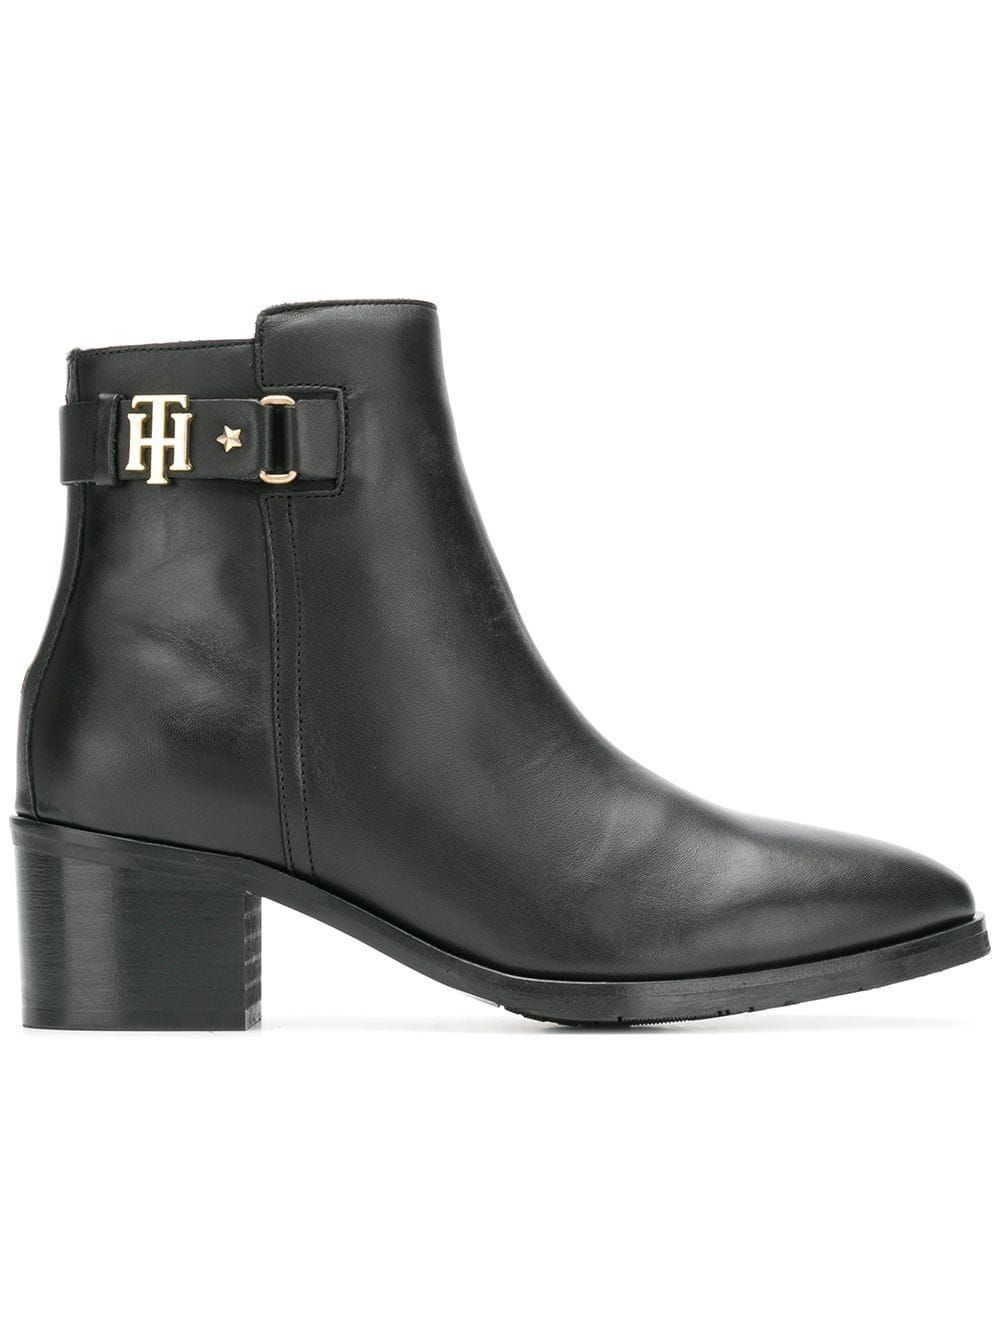 e29ad42c542 TOMMY HILFIGER TOMMY HILFIGER LEATHER ANKLE BOOTS - BLACK ...